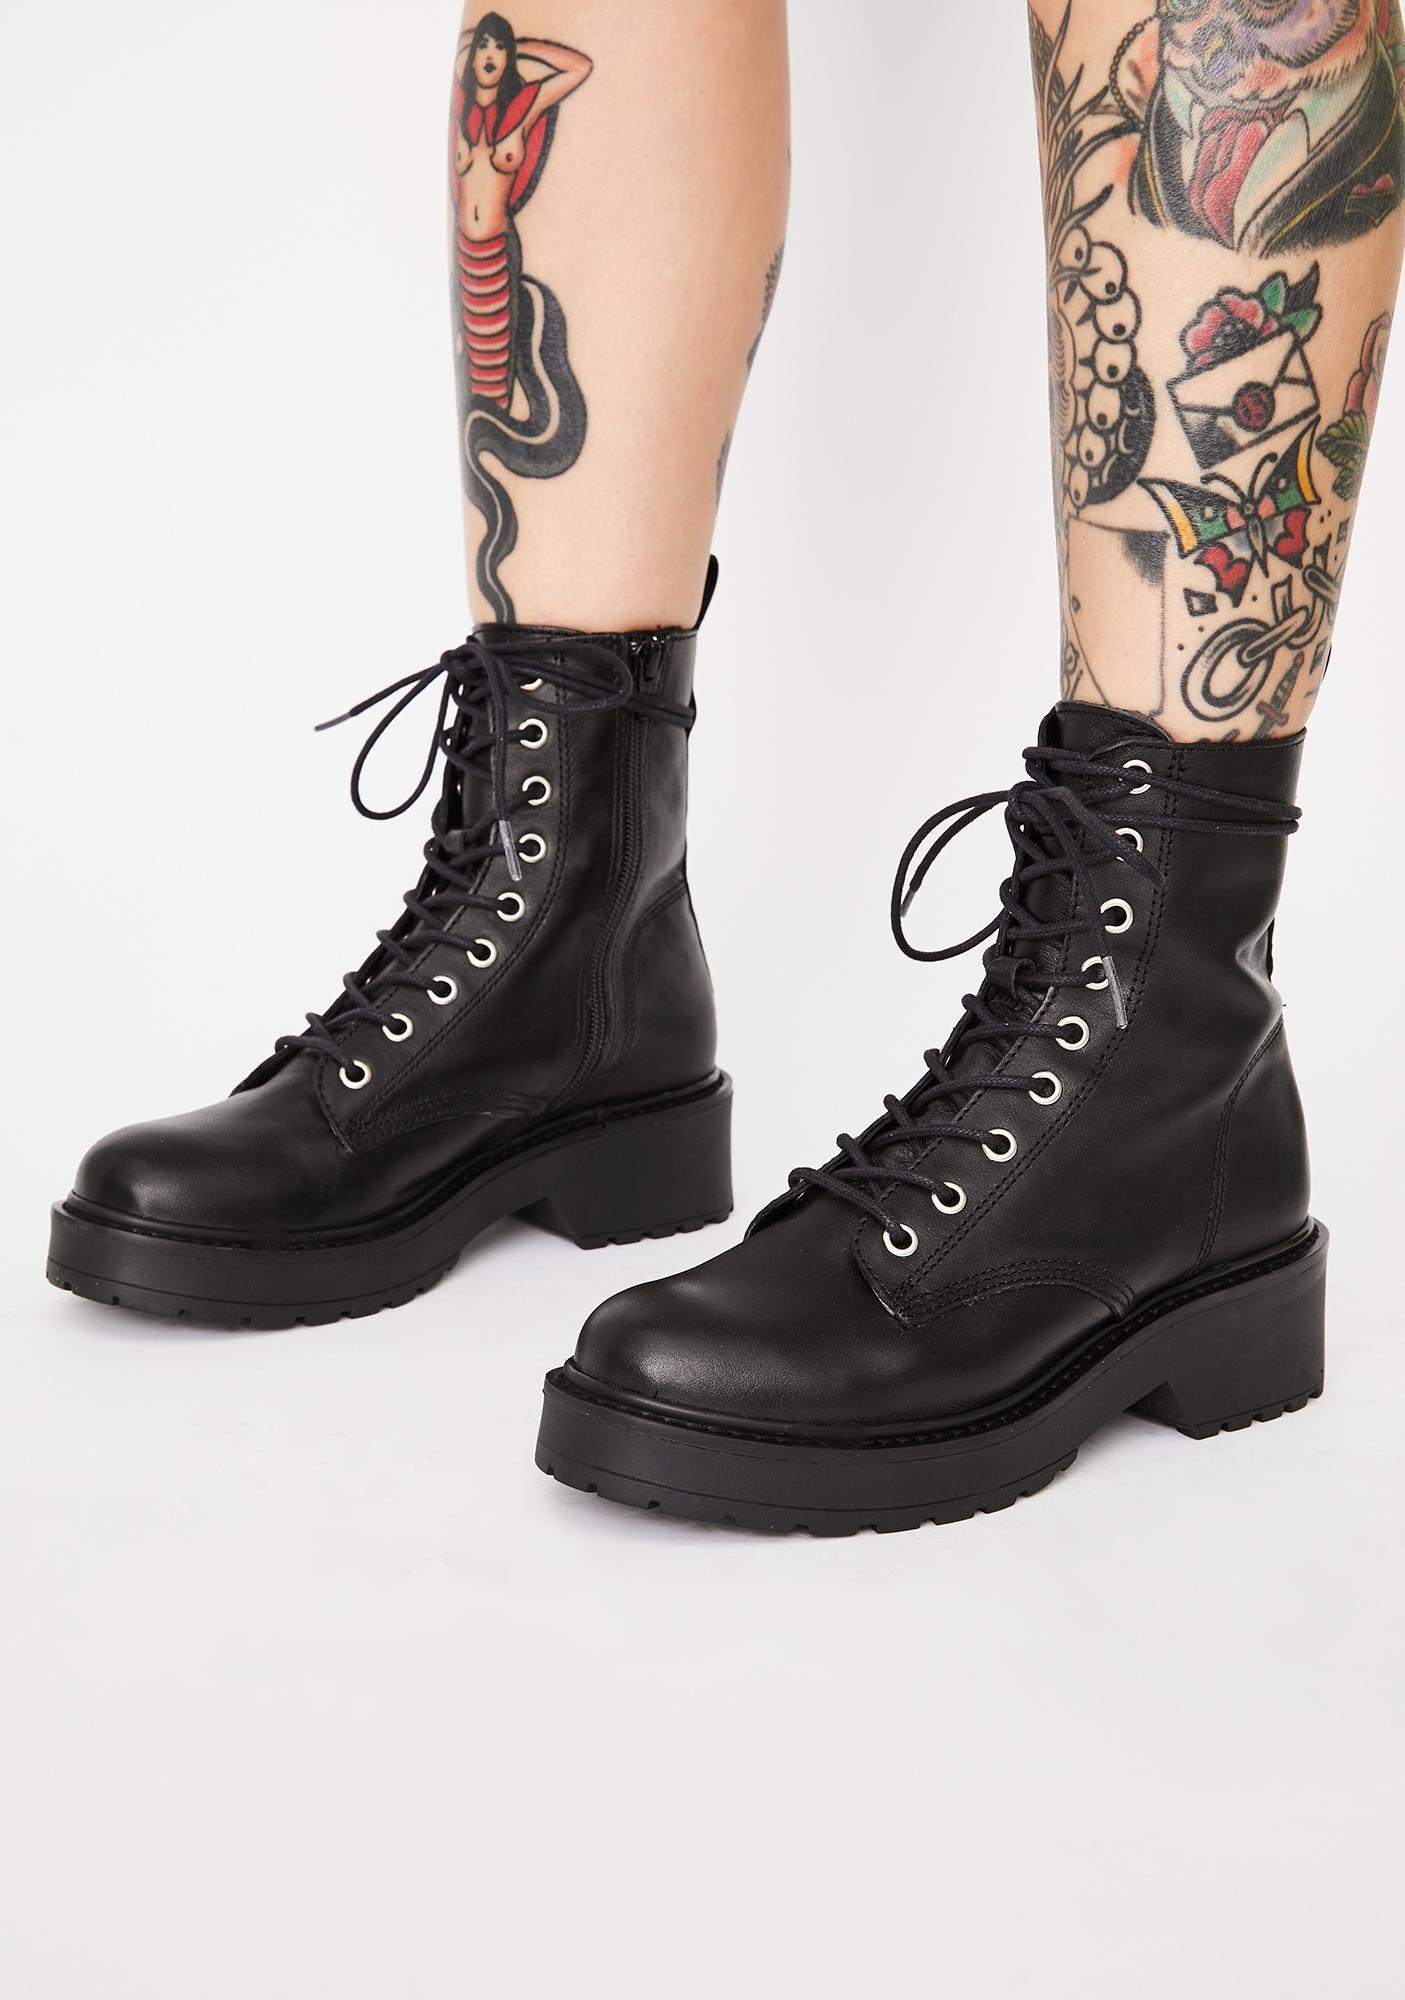 Steve Madden Tornado Leather Ankle Boots